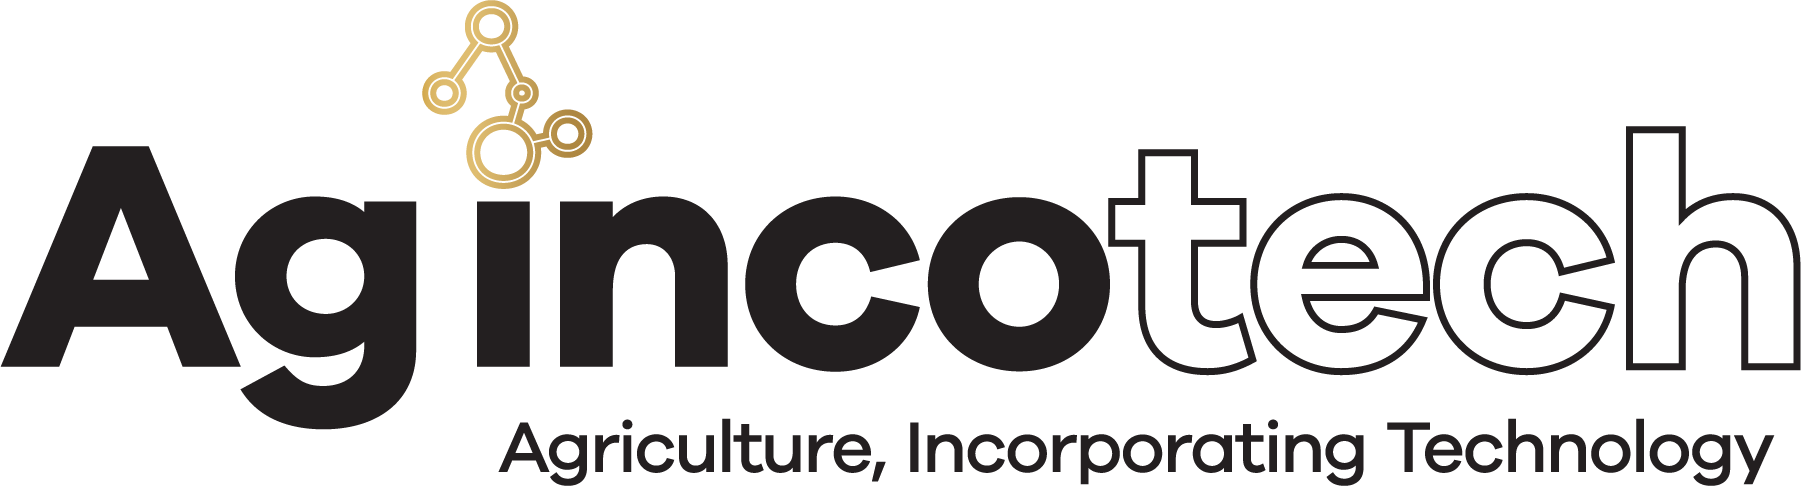 Ag Incotech - Agriculture Incorporating Technology